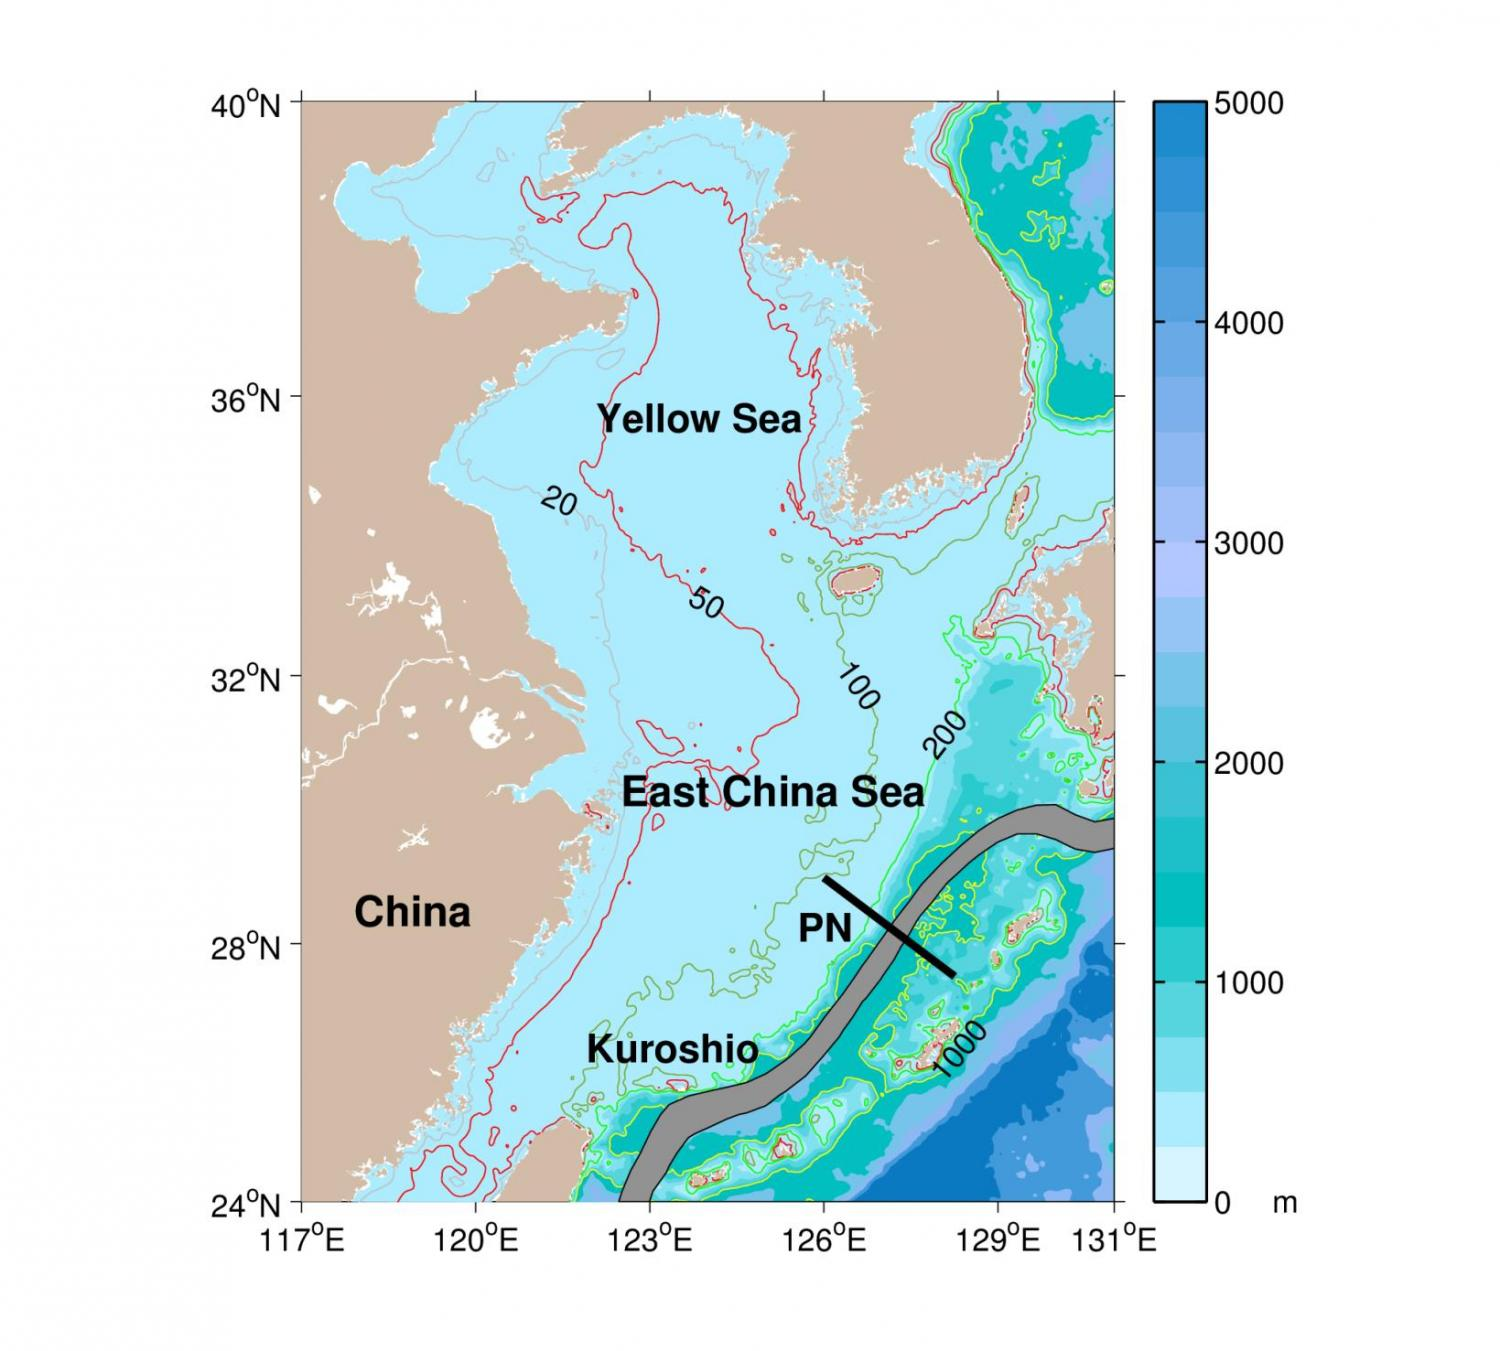 the mechanisms of SST warming in the Yellow Sea and East China Sea